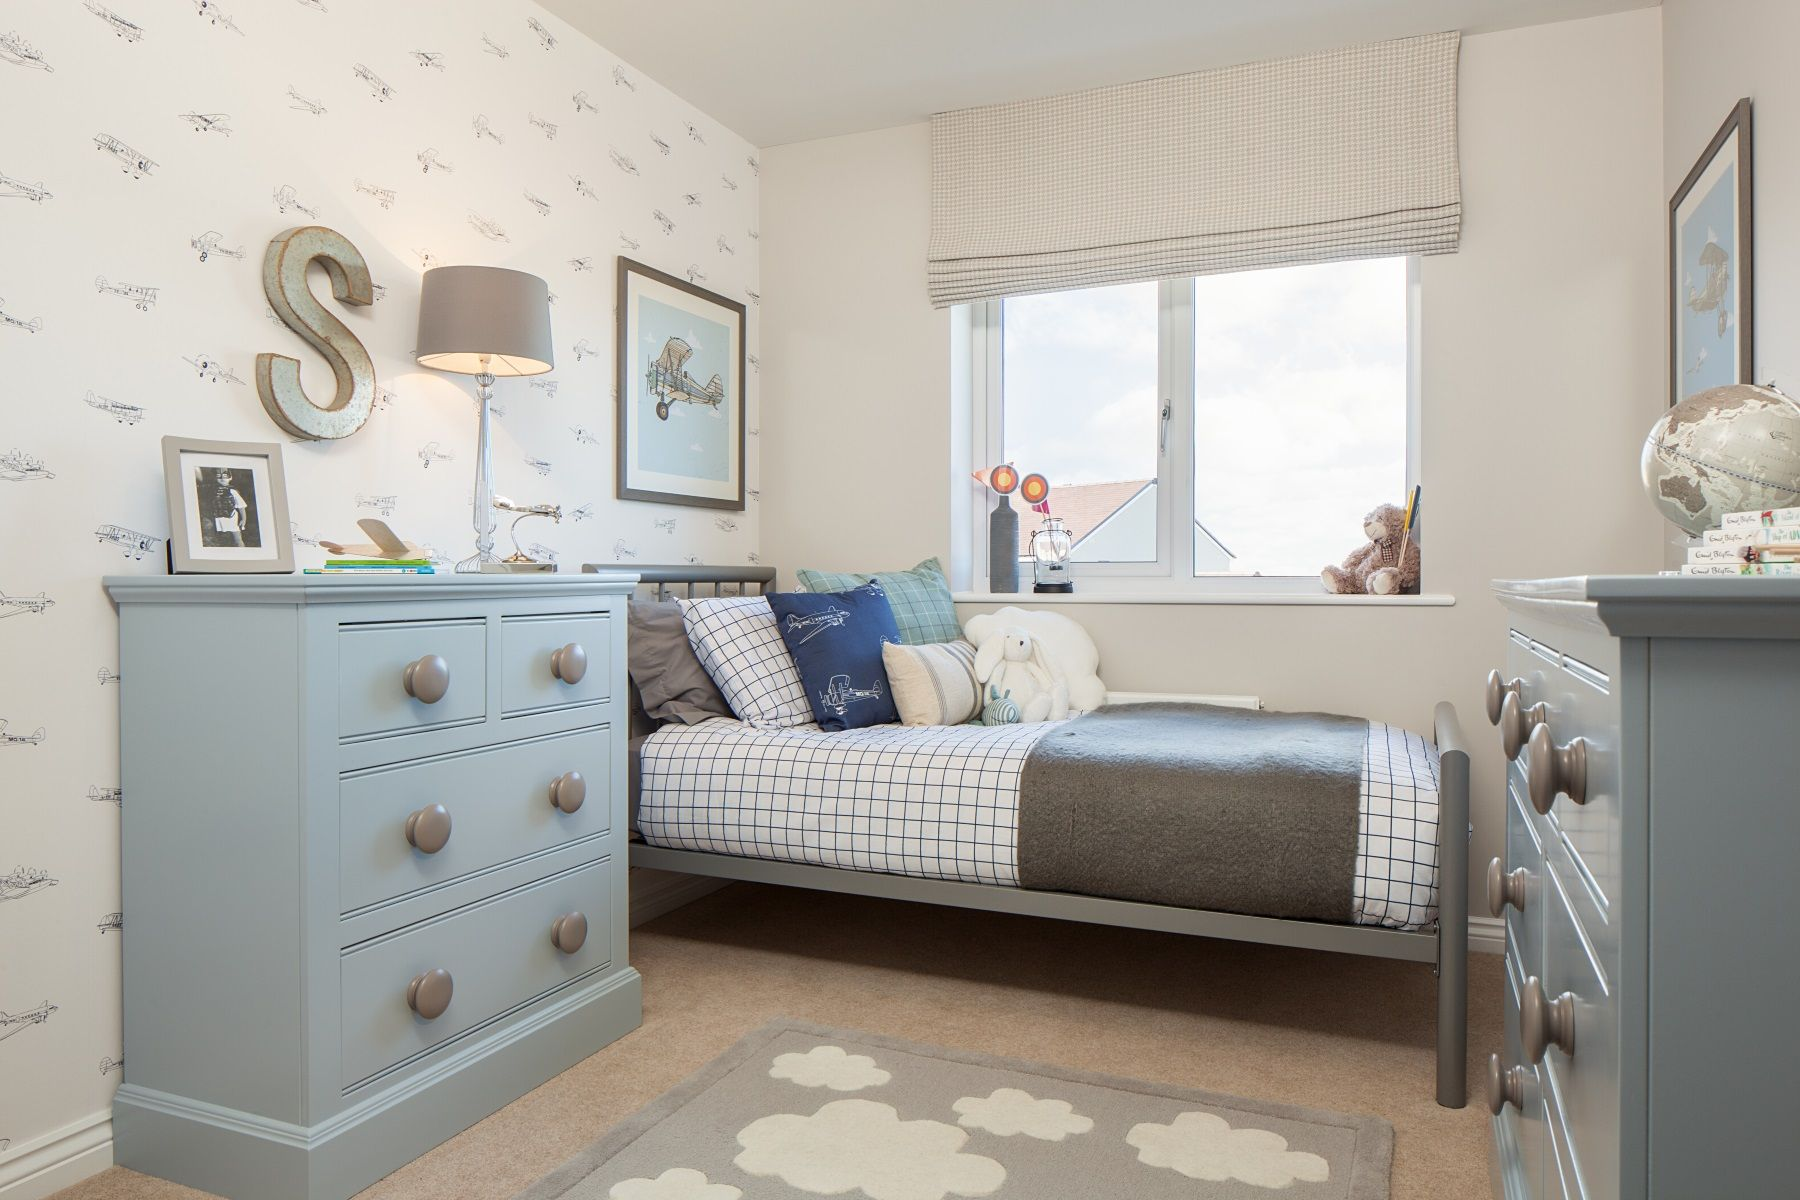 TW Exeter - Cranbrook - Thornford example bedroom 4